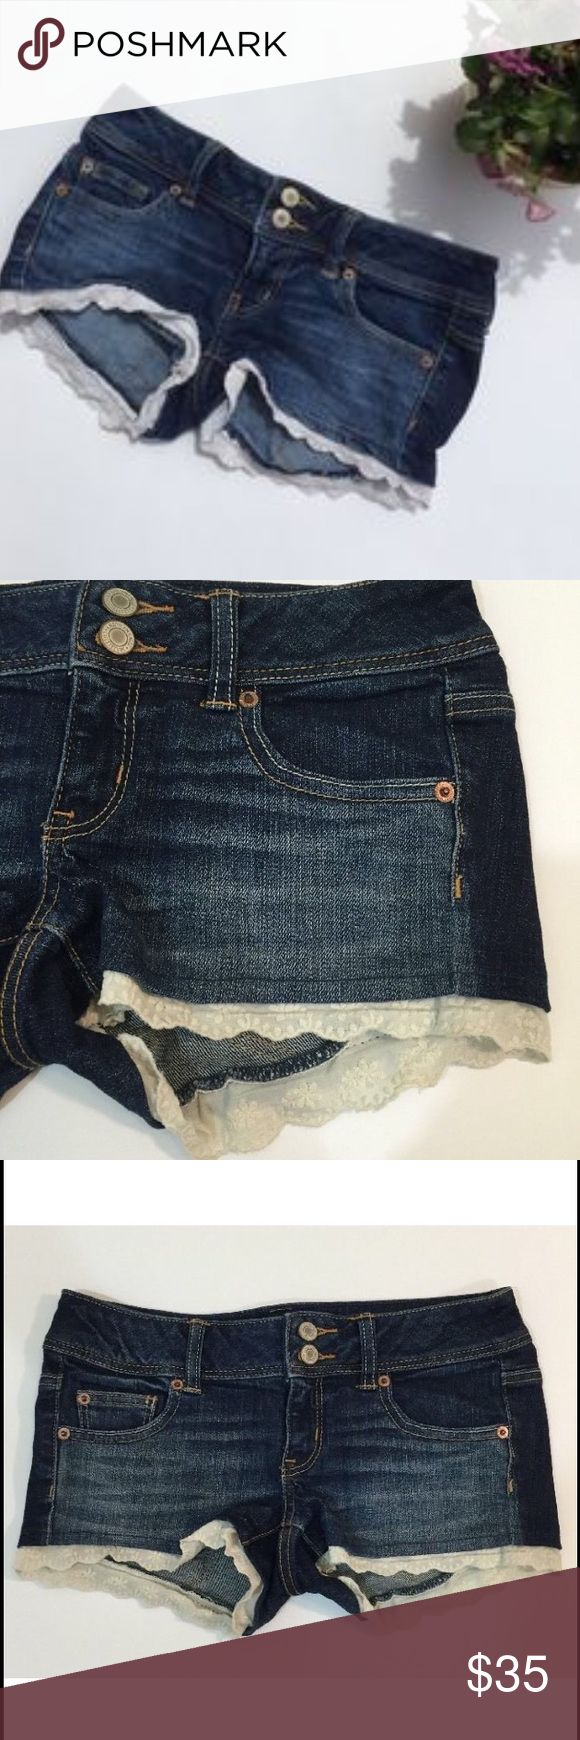 American eagle lace Jean shorts American eagle (AE) dark wash Jean shorts. Off white lace detail at the bottom. Great condition. Only worn a couple times. Size 4 🔸🔸🔸🔸🔸🔸🔸🔸🔸🔸🔸🔸🔸🔸🔸❌NO TRADES ❌NO LOWBALL COMMENTS  ✅USE OFFER BUTTON  ✅ASK QUESTIONS  ✅ASK TO MODEL ❤️❤️❤️❤️❤️❤️❤️❤️❤️❤️❤️❤️❤️❤️ ❗️ALL PURCHASES WILL BE GOING TOWARDS MY TRIP TO VISIT MY BOYFRIEND OF 3 YEARS! He recently moved 19 hours away to become a cop! THANK YOU EVERYONE!❗️ American Eagle Outfitters Shorts Jean…